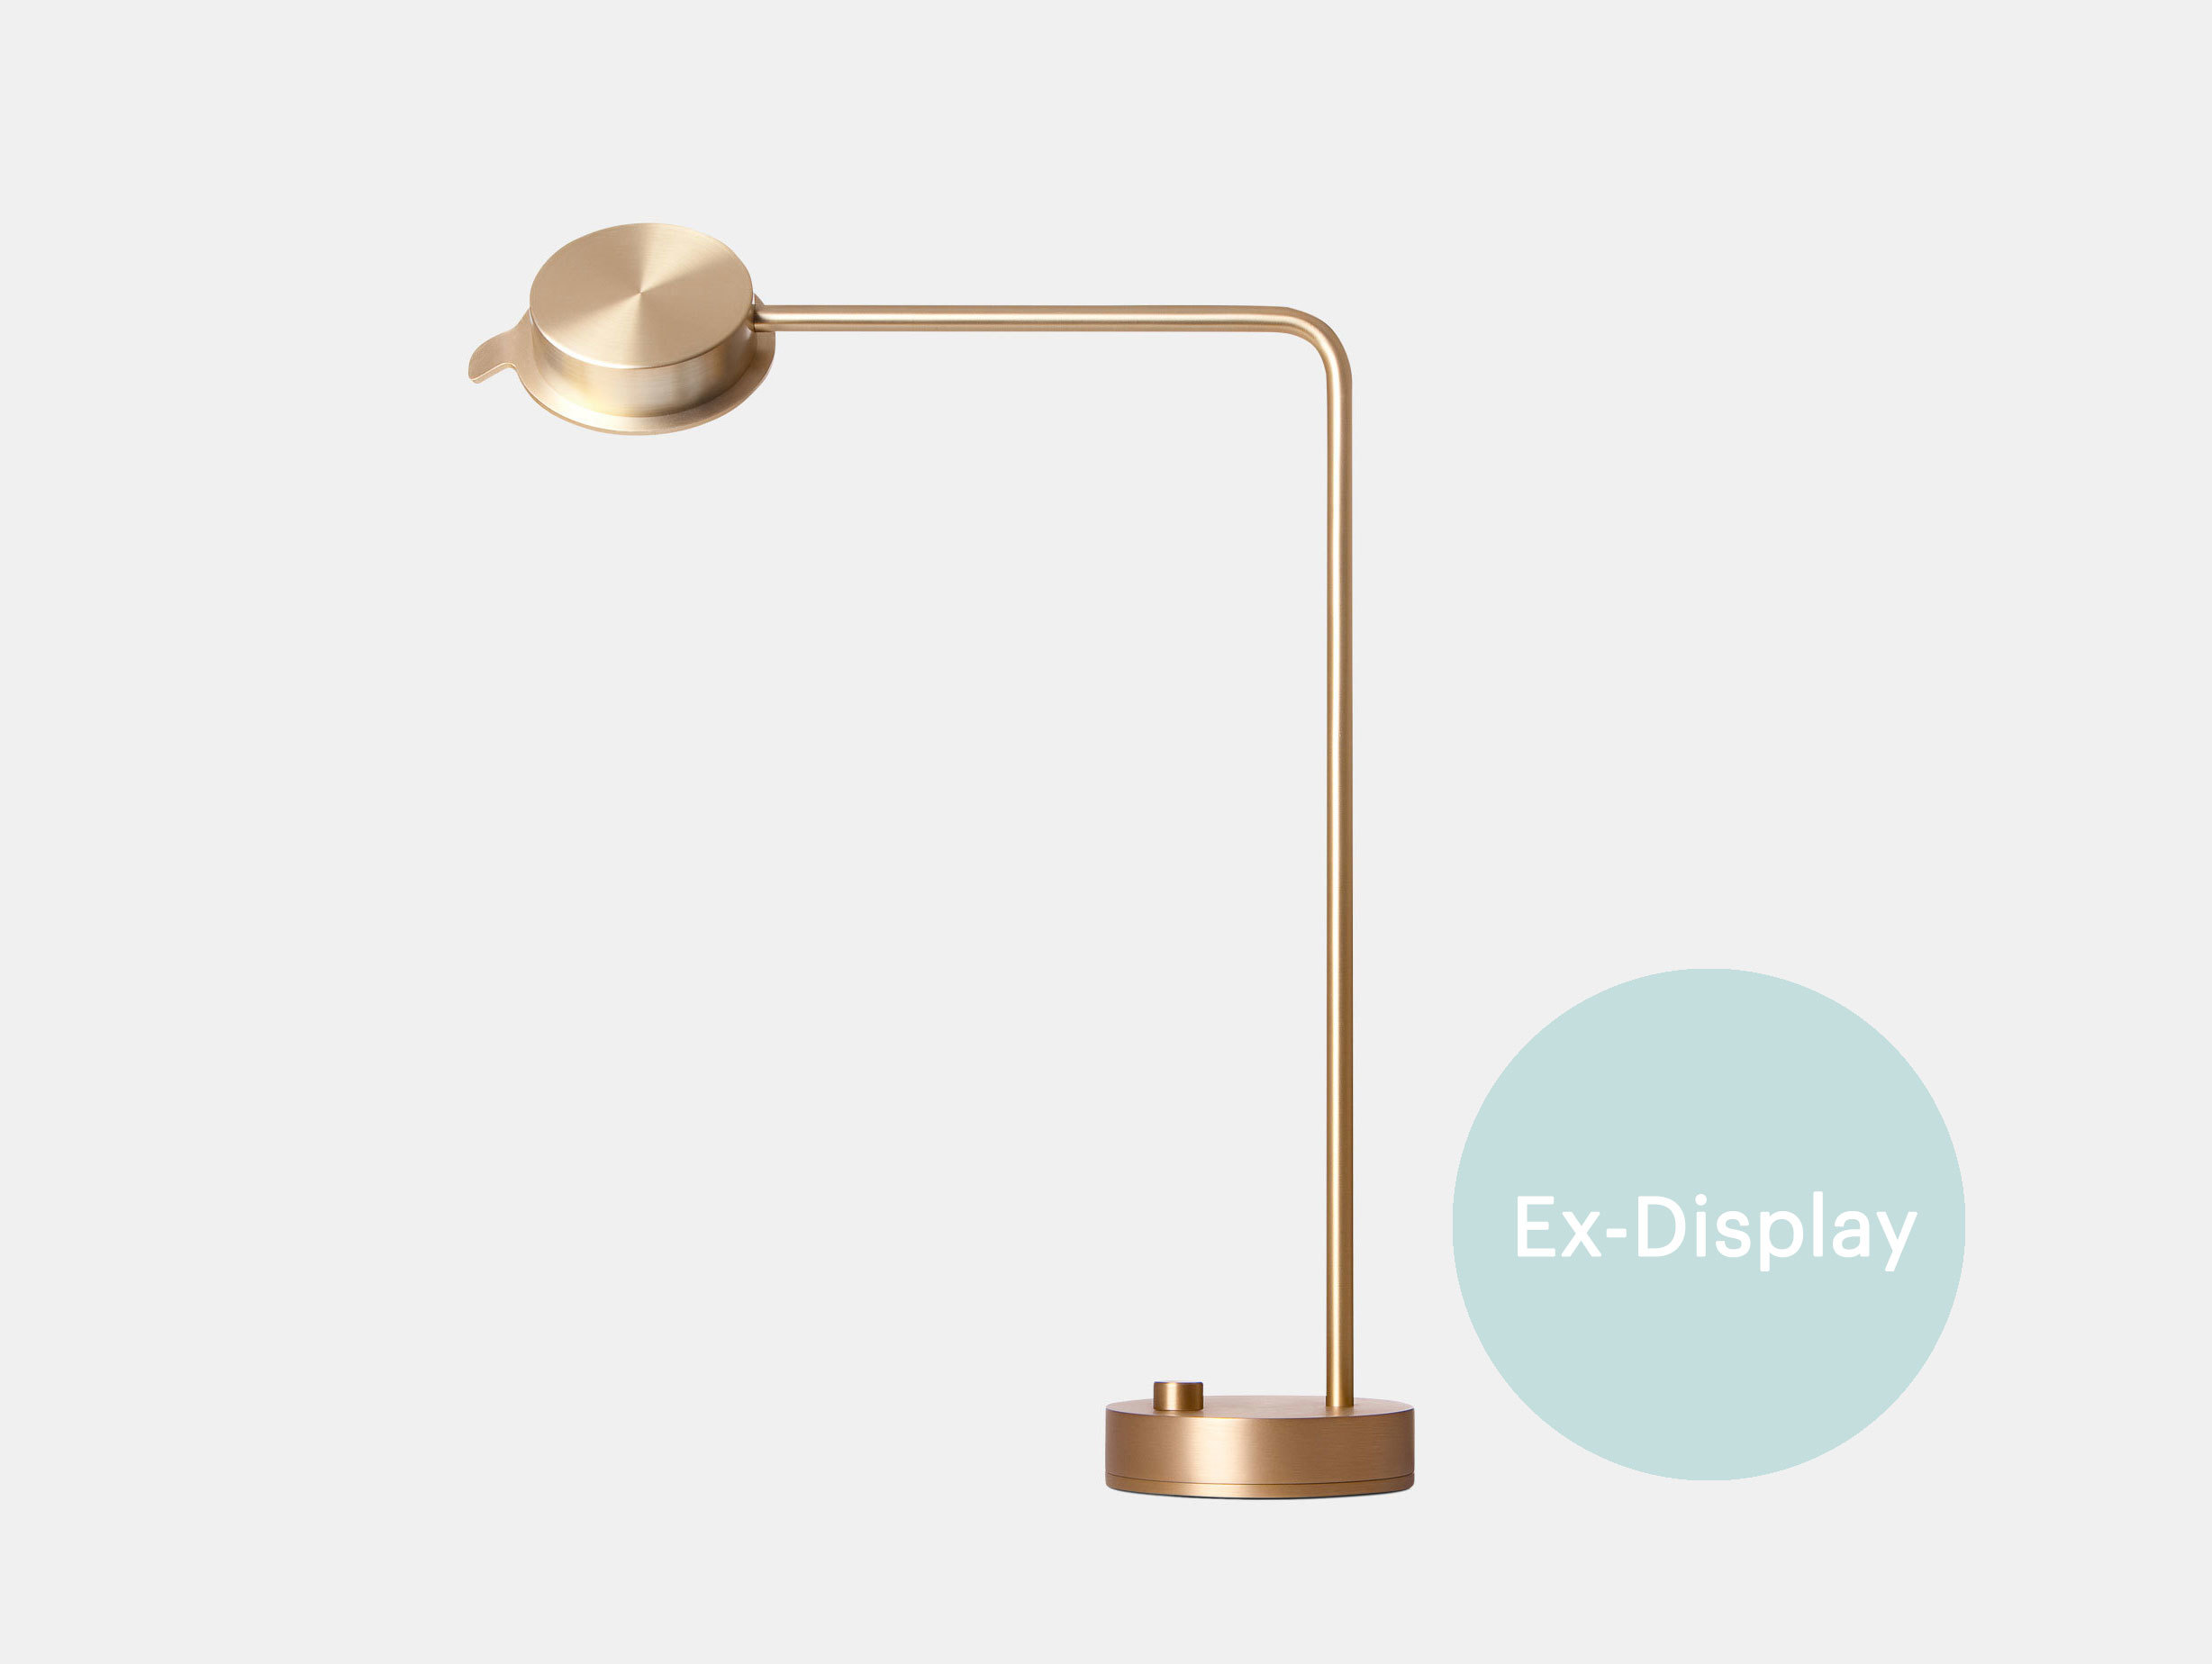 w102 Table Lamp / 30% off at £420 image 1